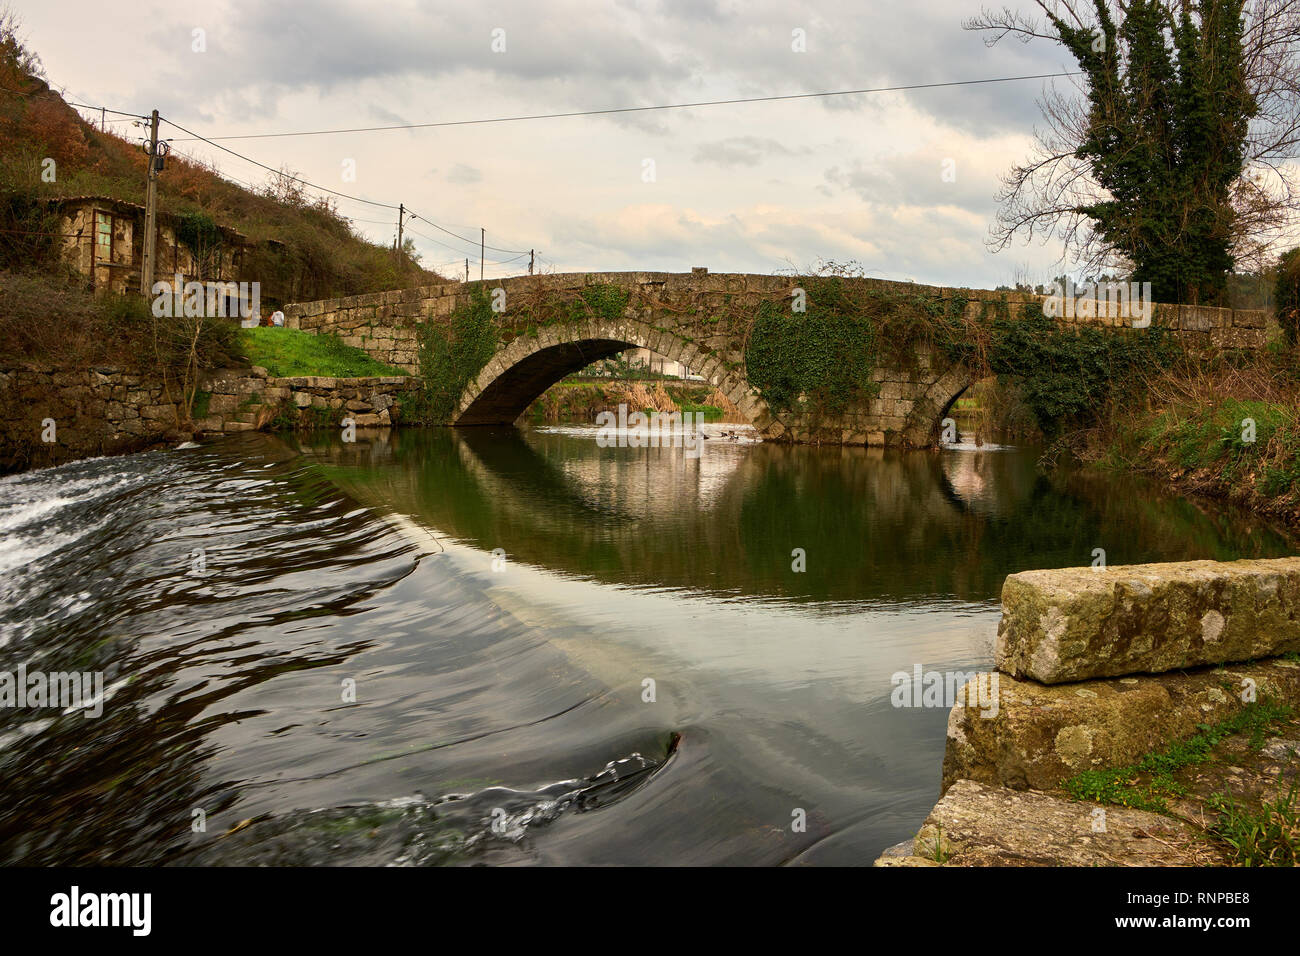 Ponte do Arco, Vila Fria Felgueiras north of Portugal - Stock Image